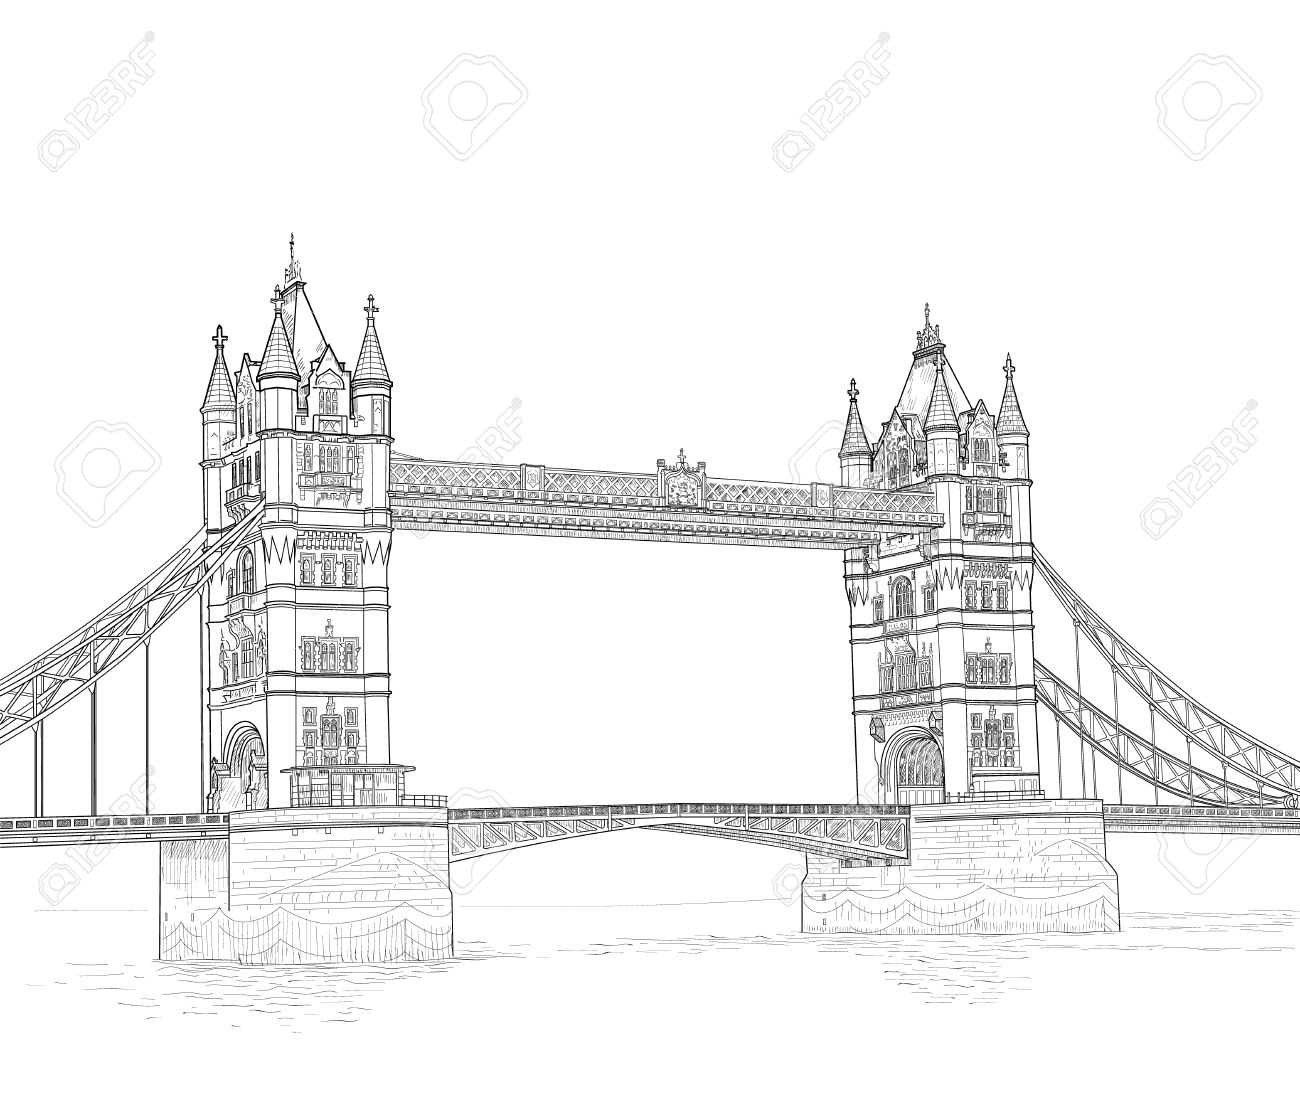 Croquis Du Tower Bridge à Londres En Angleterre Illustration Vectorielle